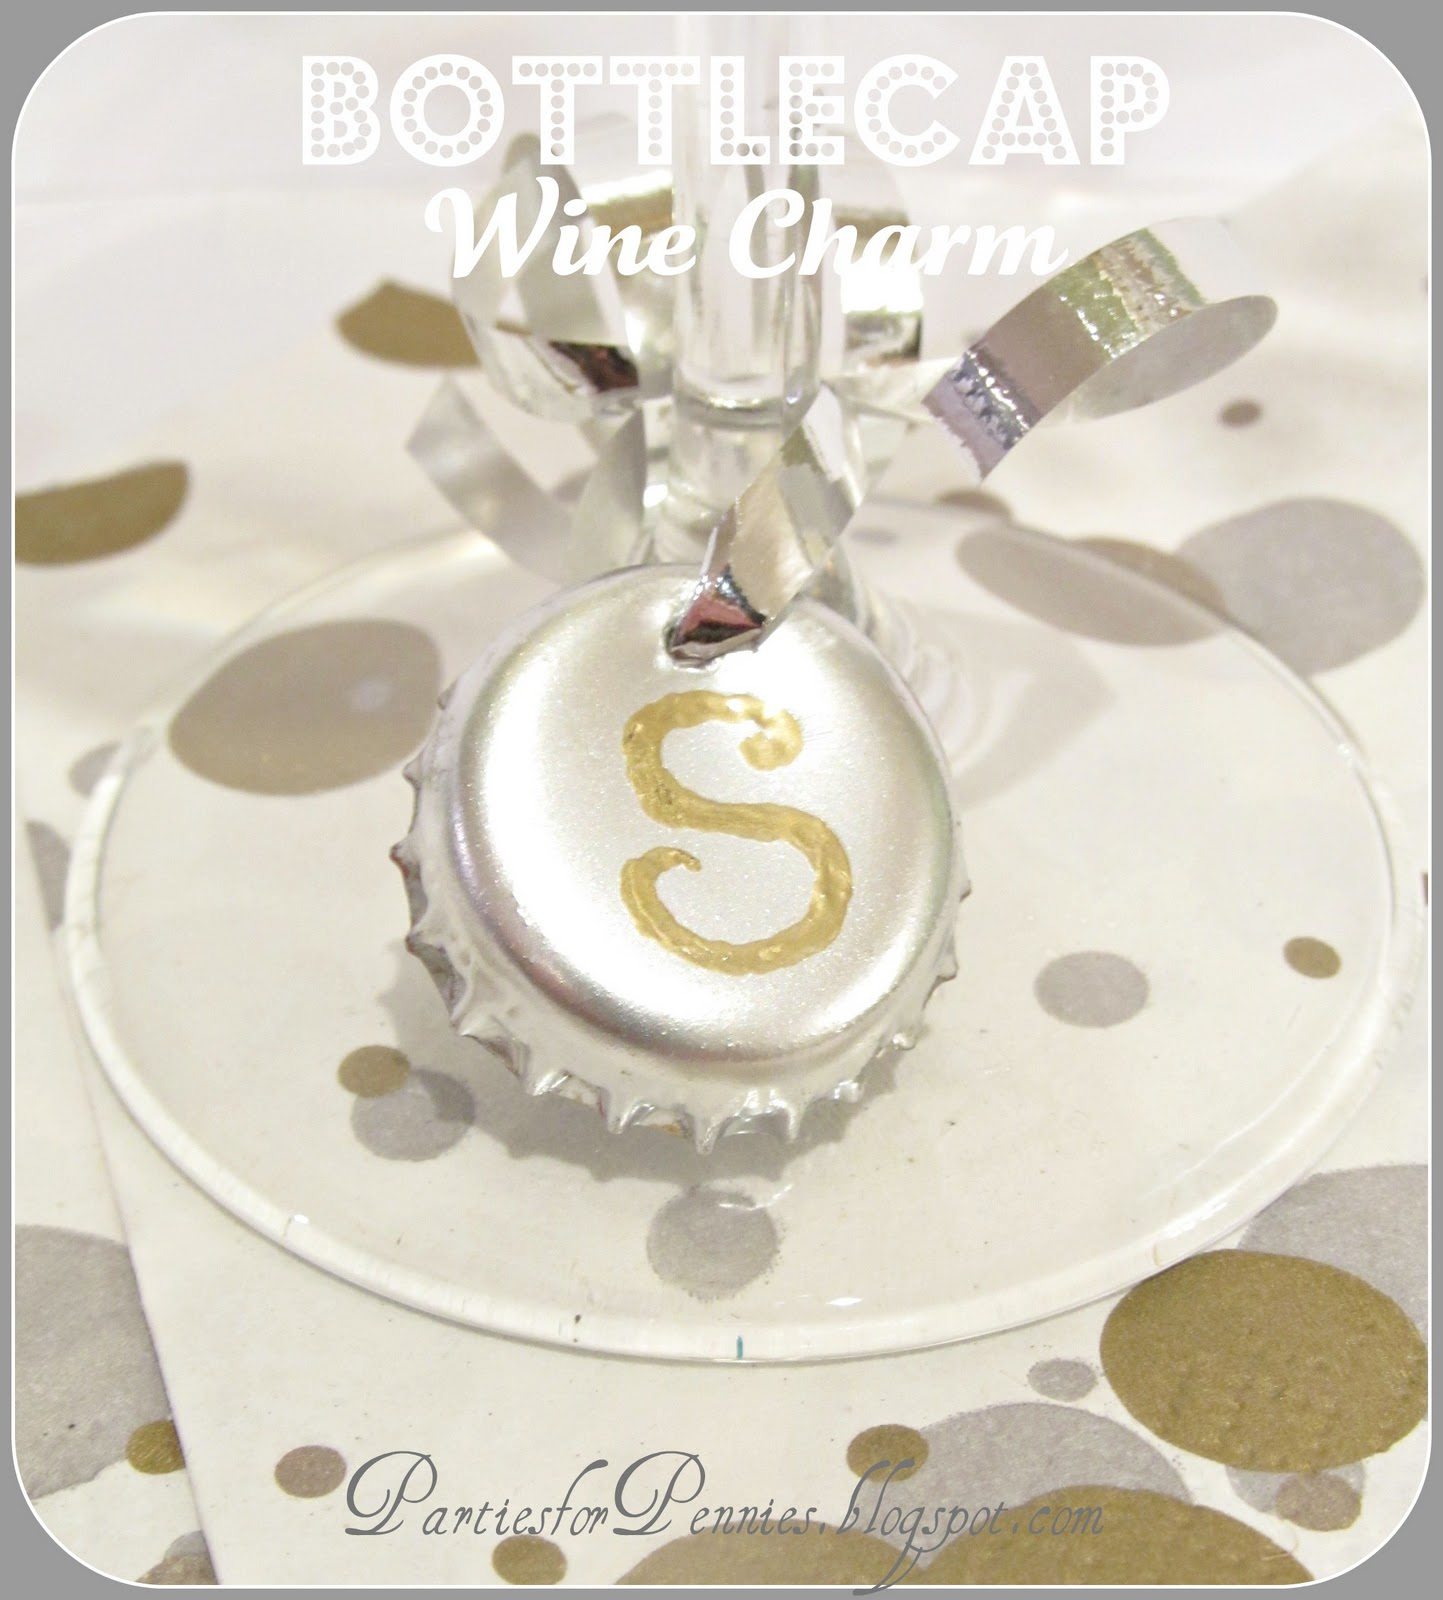 Bling Bling for Zero Cha-Ching (New Years Eve Decor) - Parties for ...